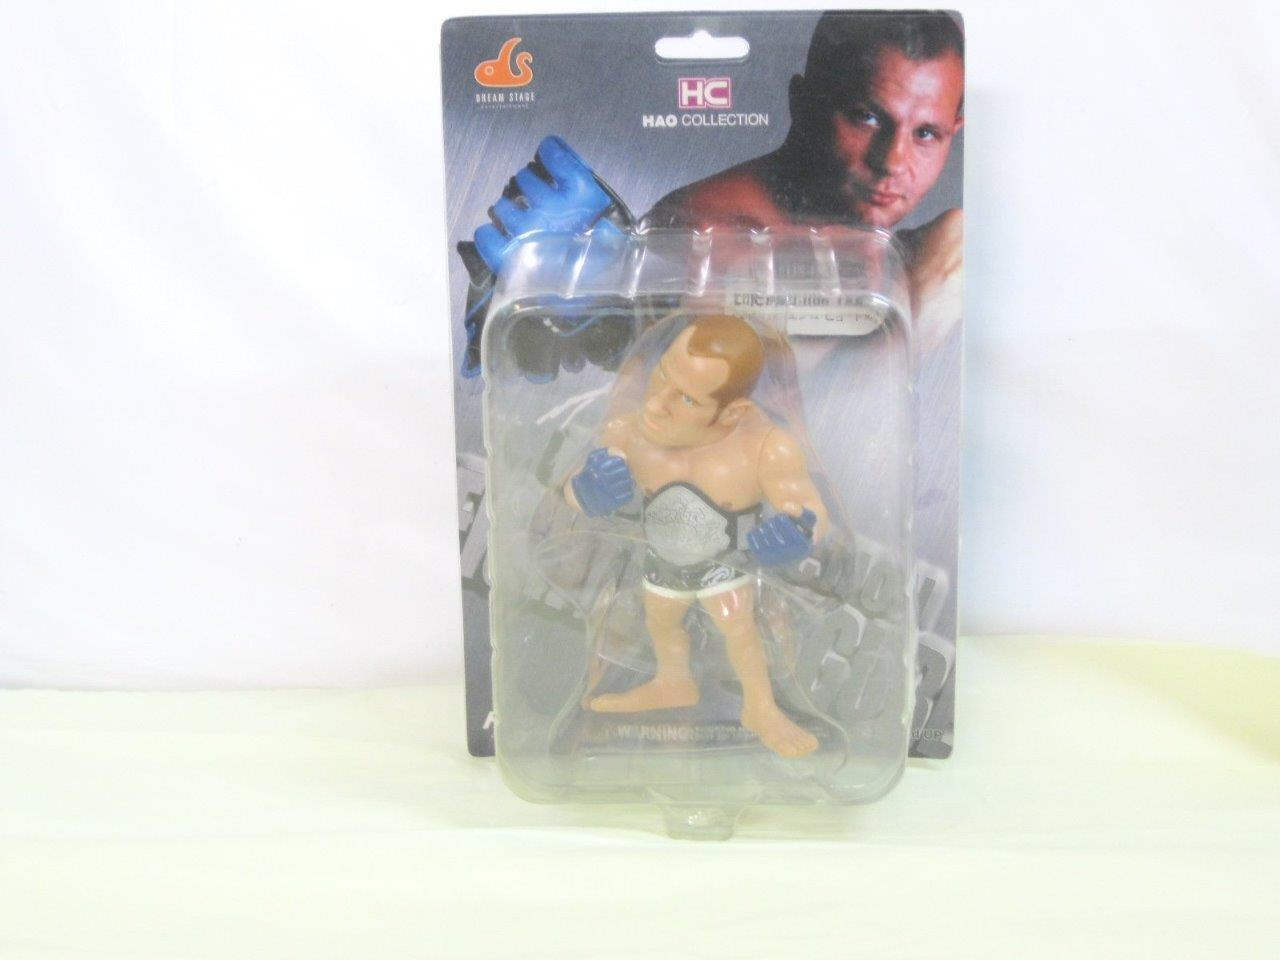 HAO COLLECTION FIGURE Fedor Emelianenko DOLL PRIDE UFC in BOX